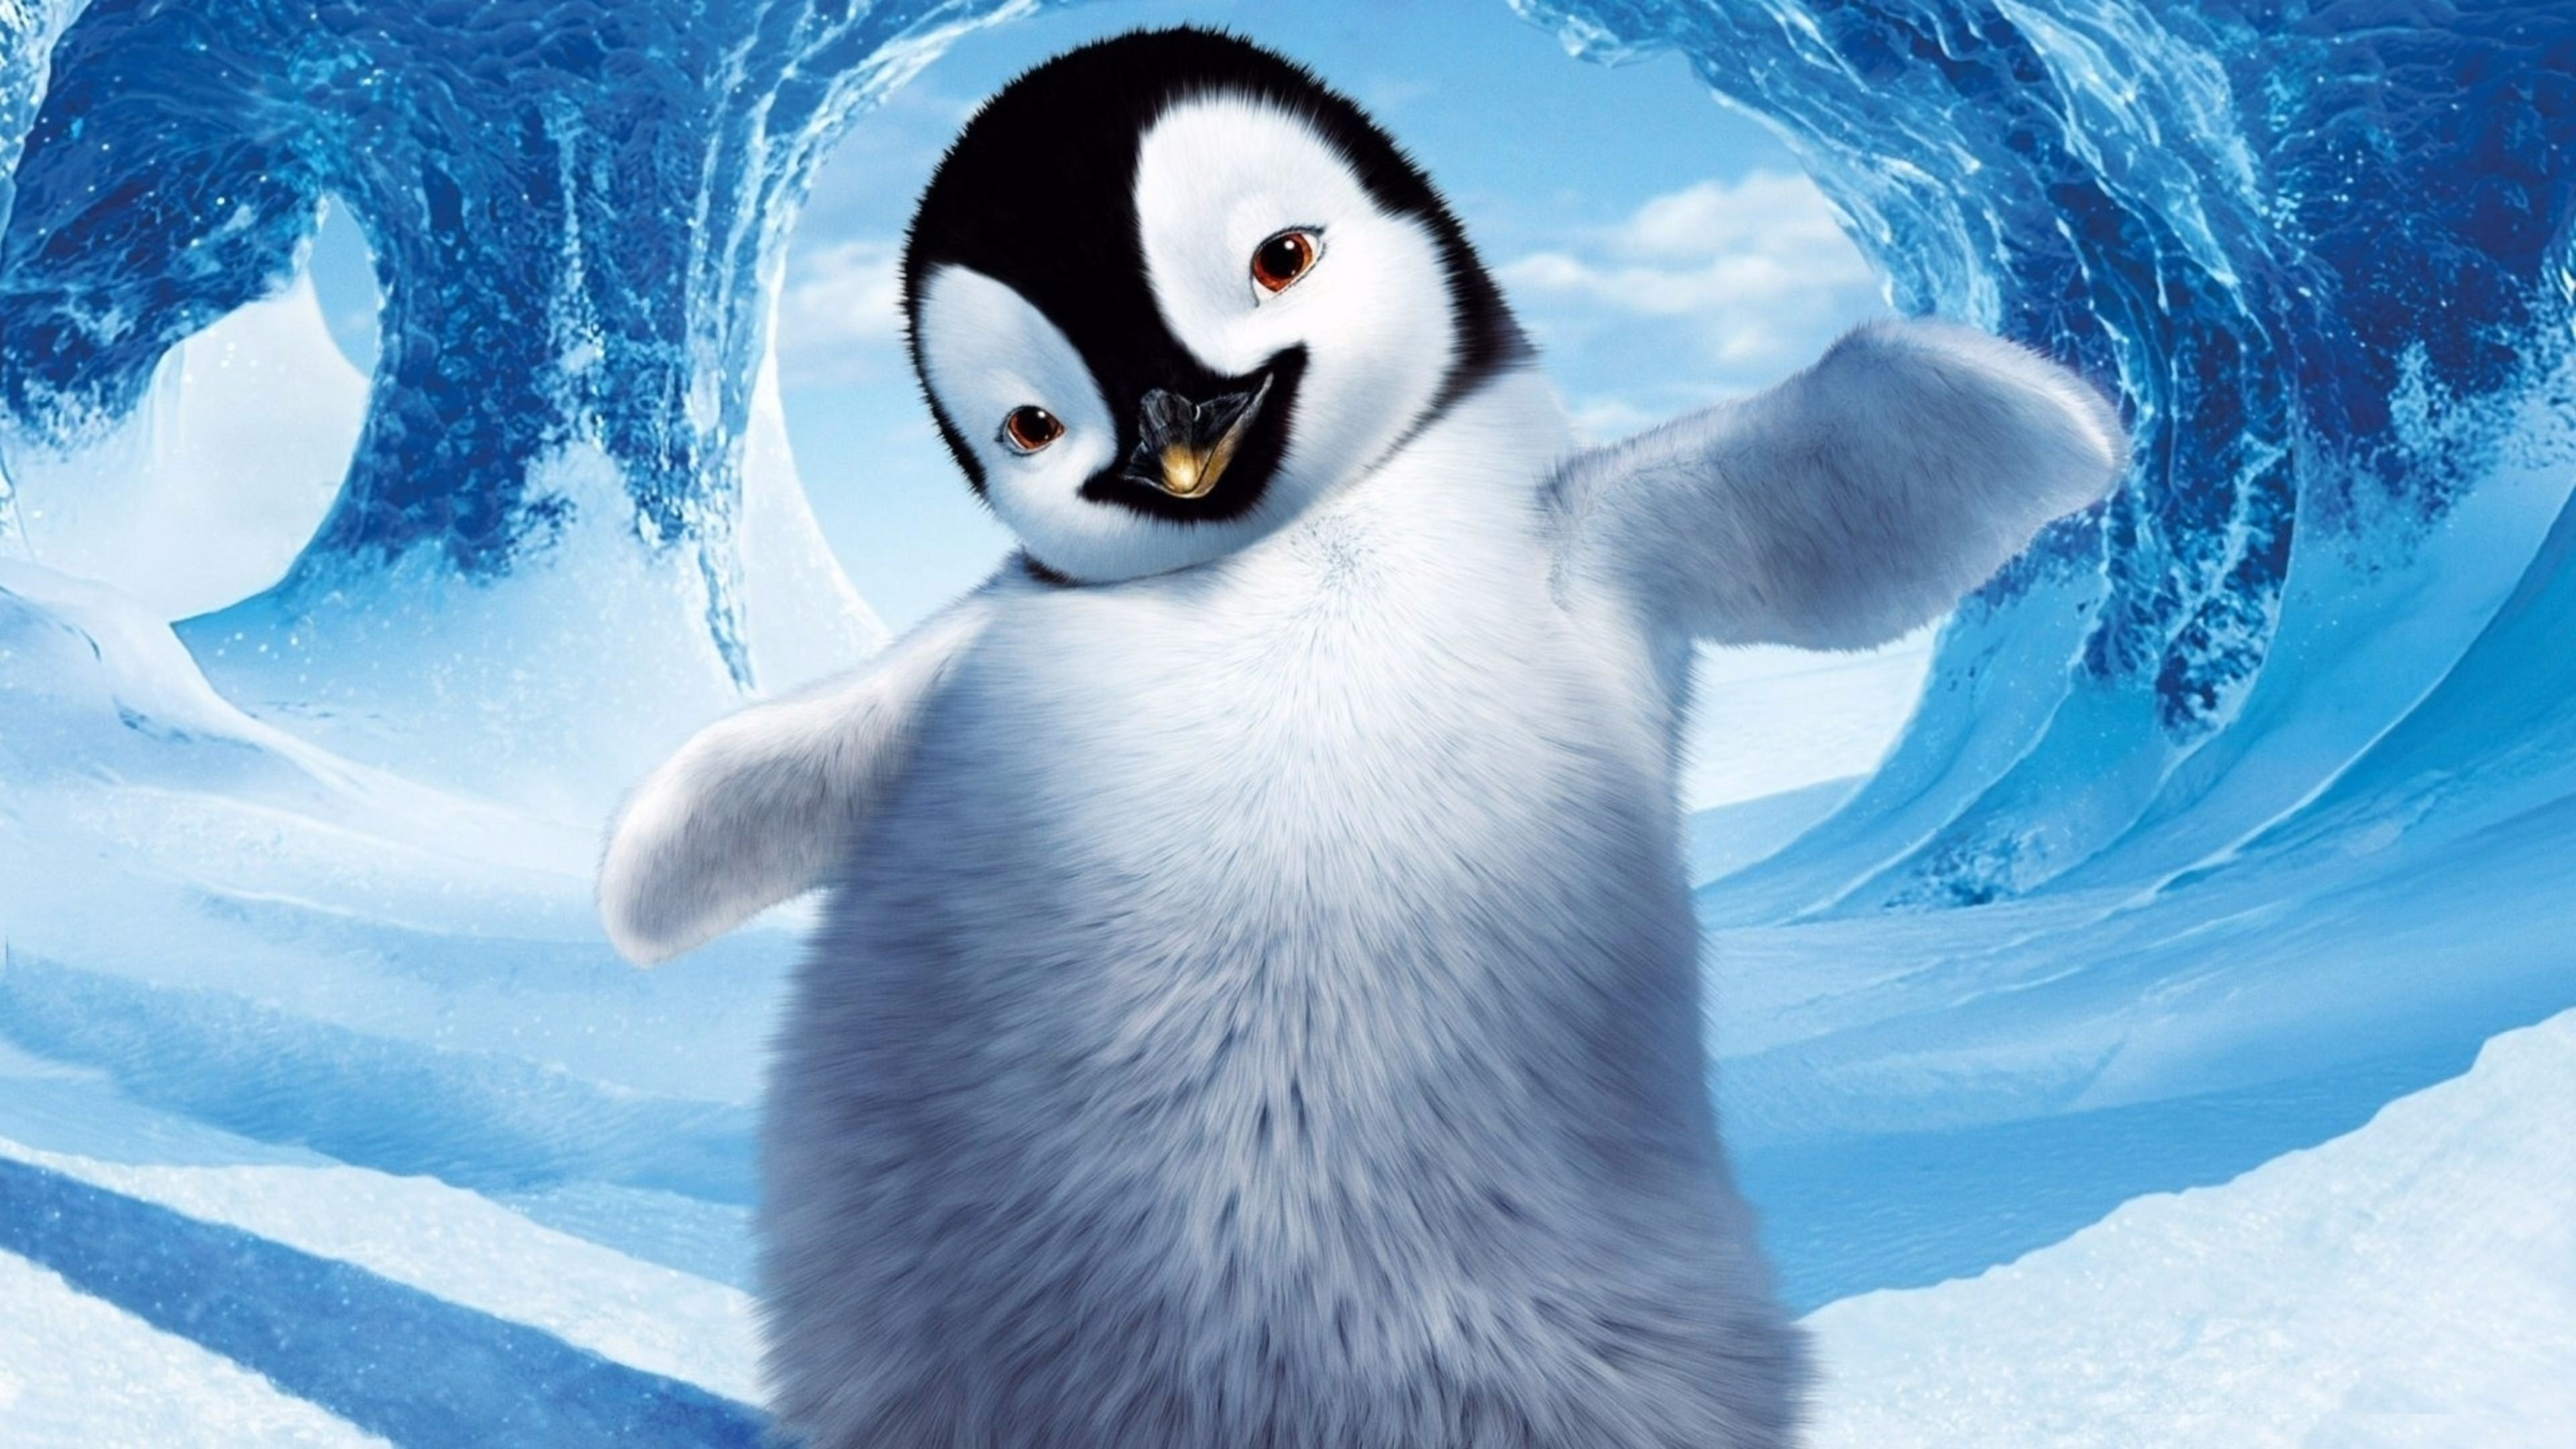 Cute 2016 Penguin 4K Wallpapers 4K Wallpaper 3840x2160